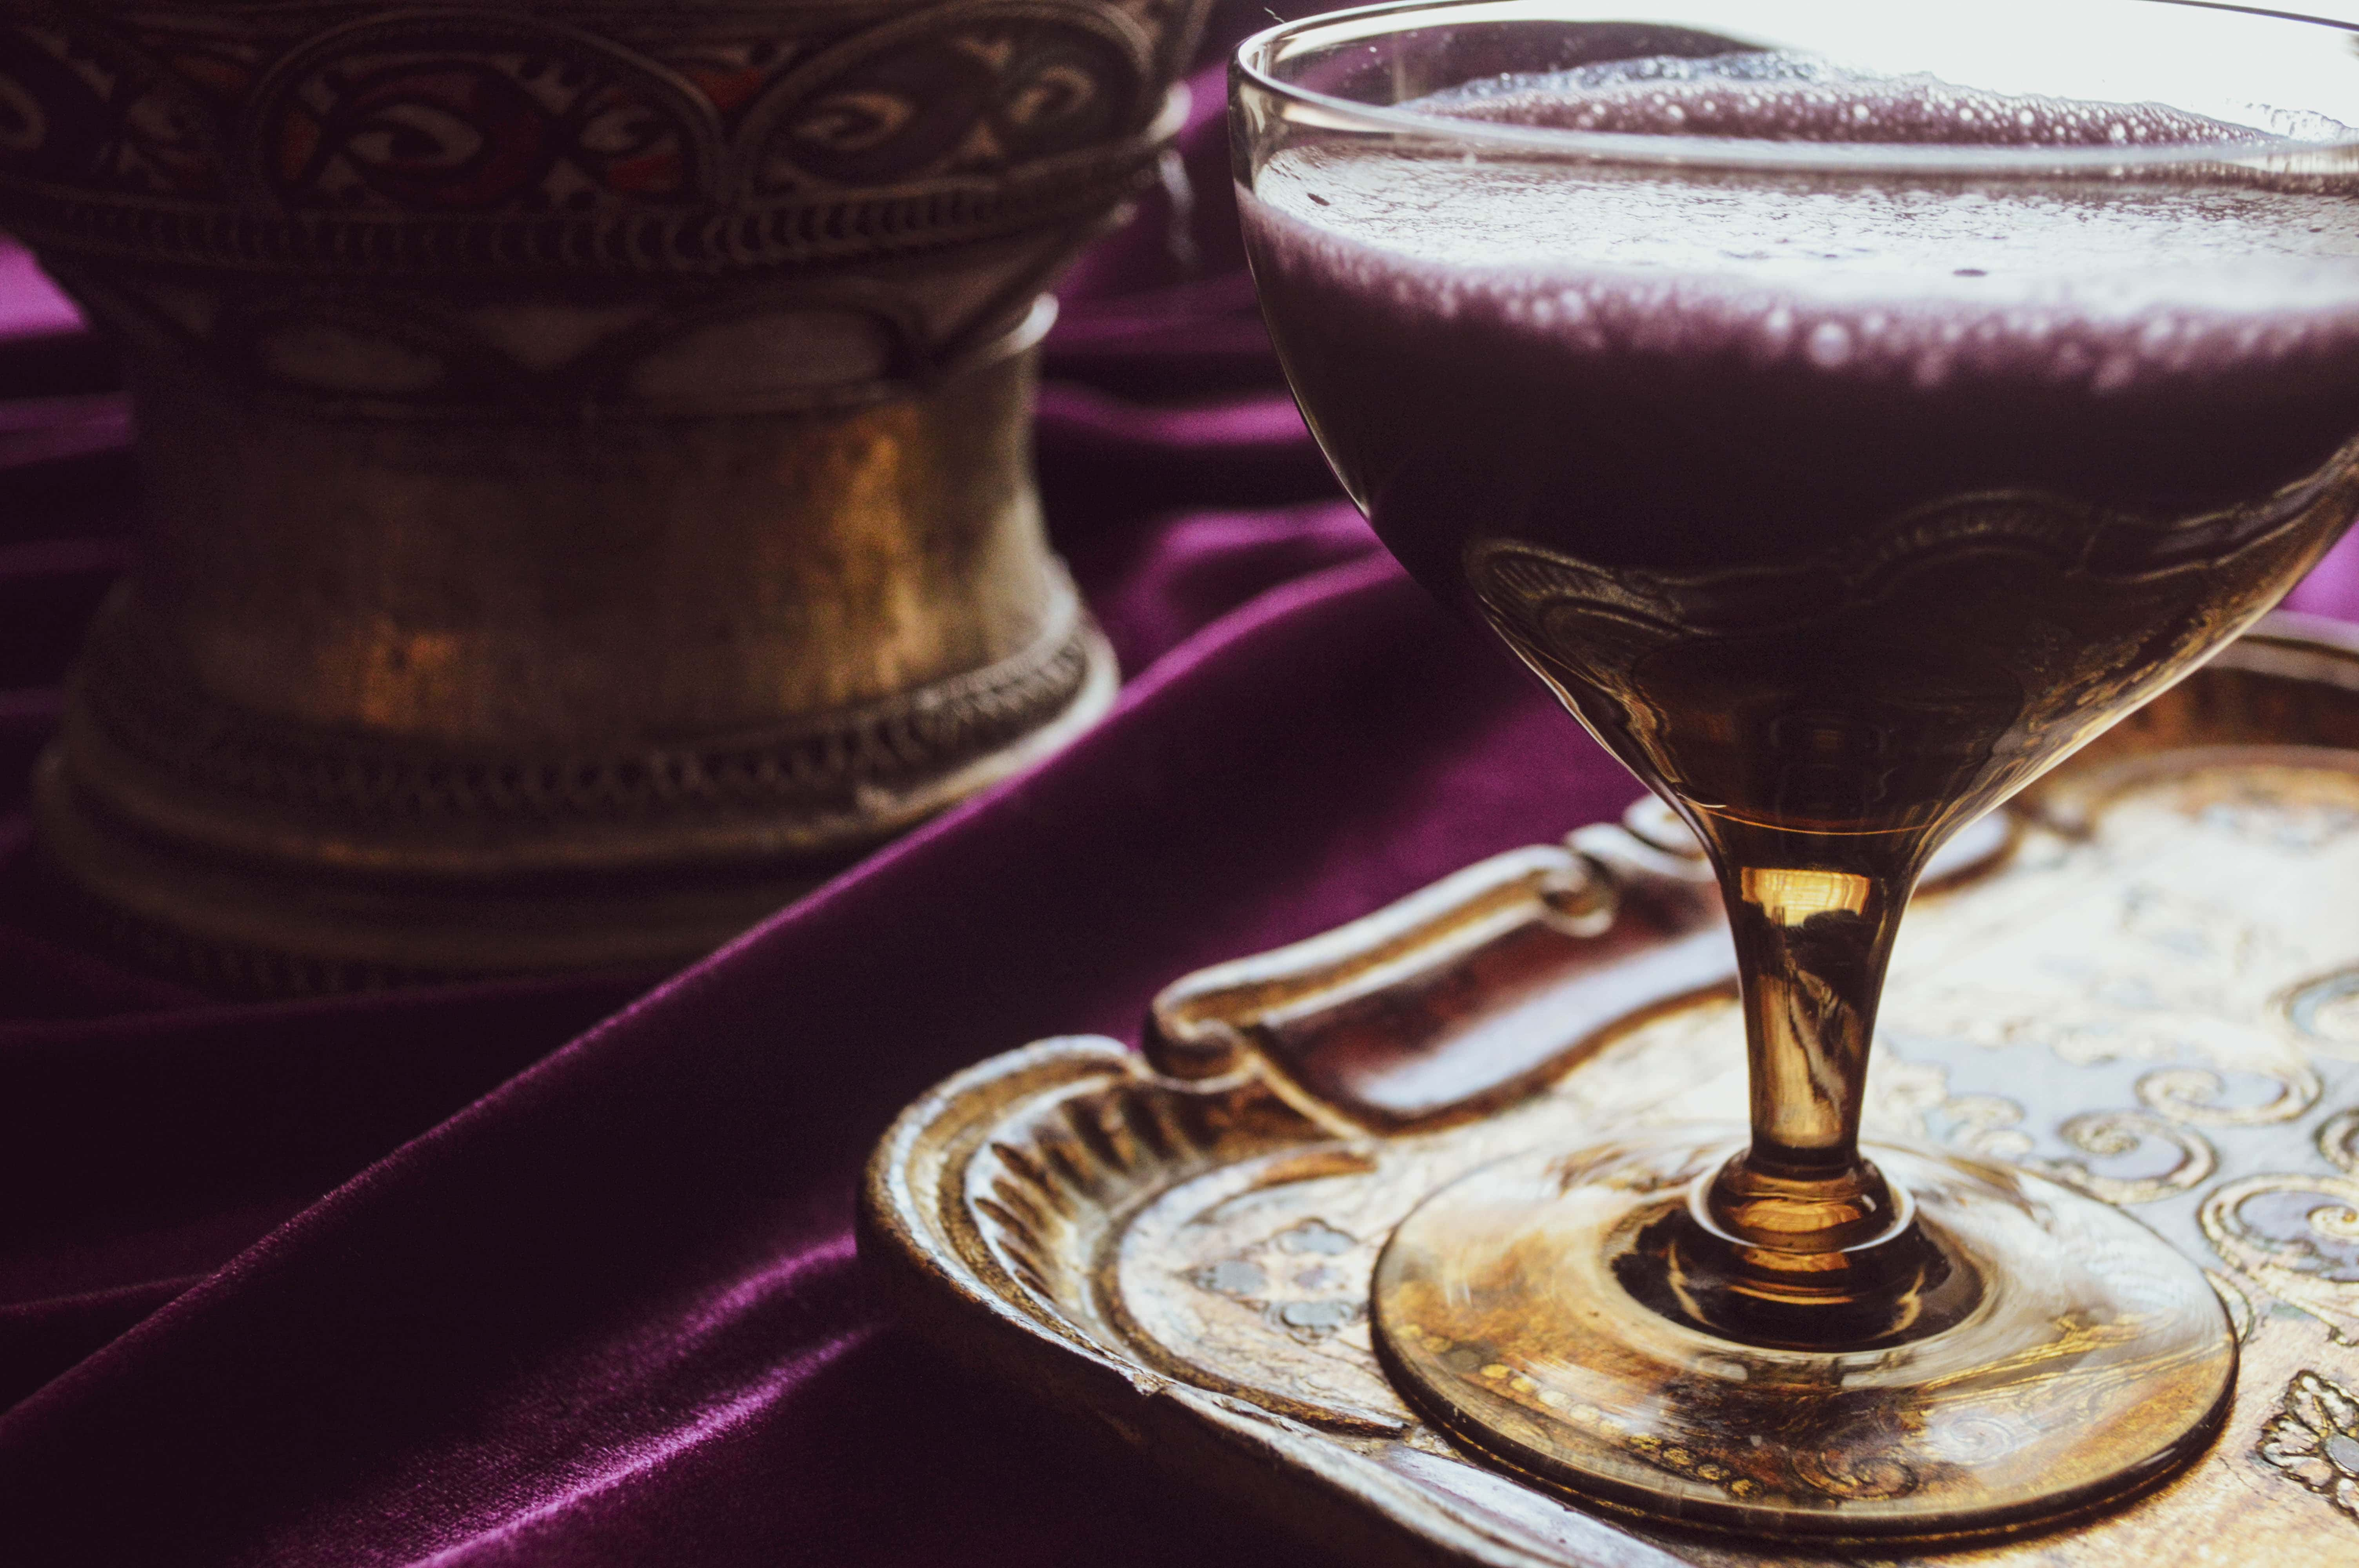 Maqui Drink Recipe Alise Marie Beauty Witch February 2021 Enchanted Living Magazine